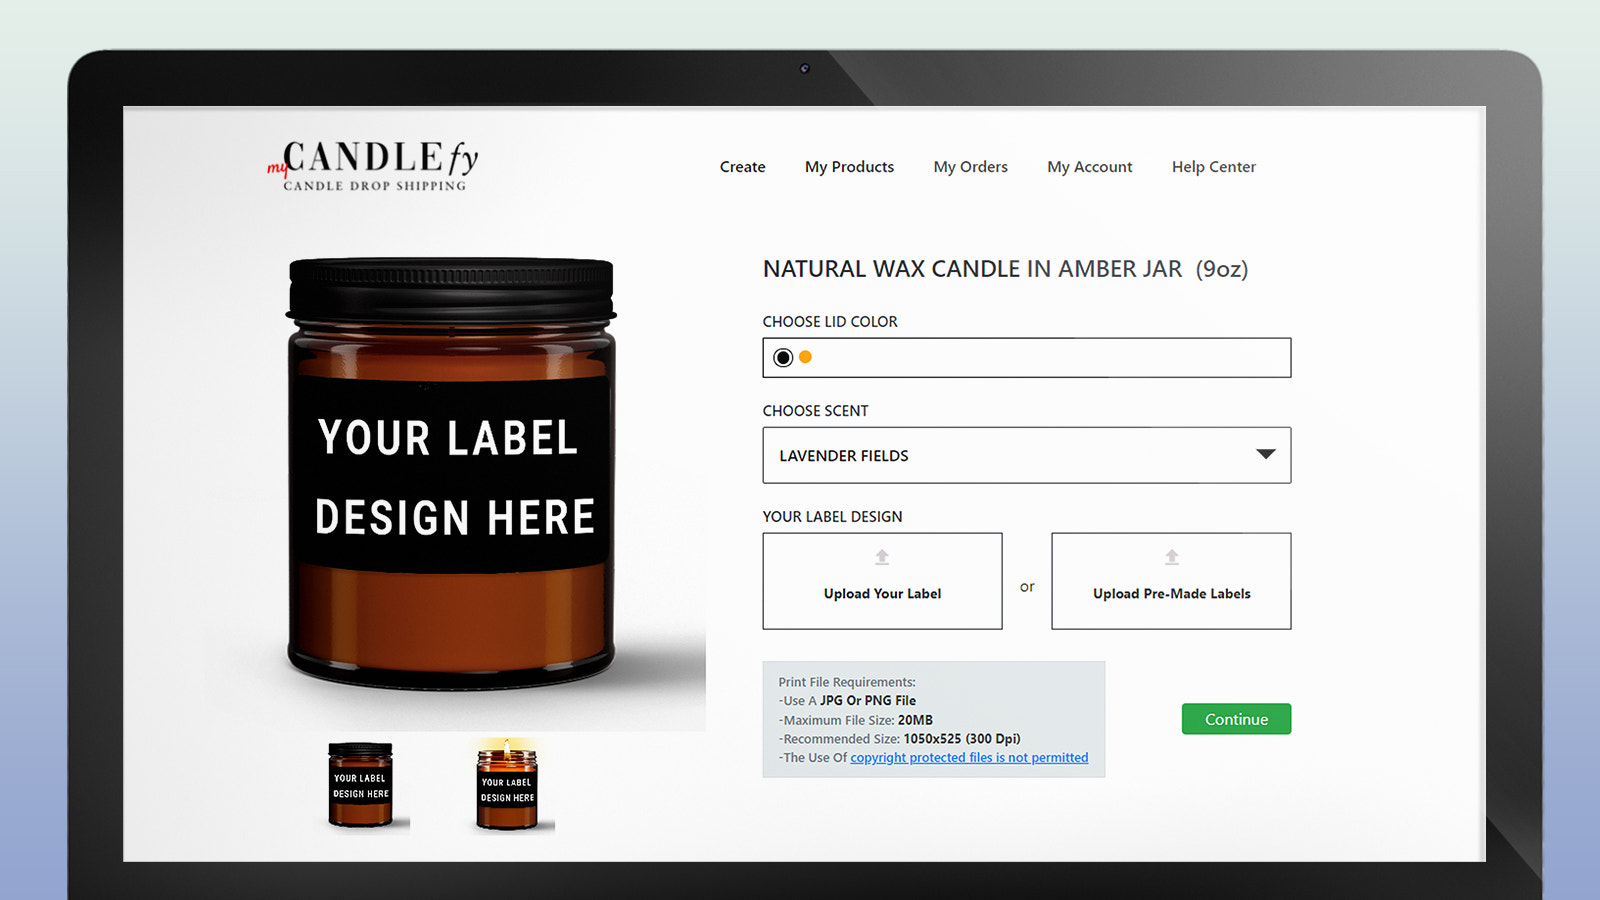 Drop Shipping Candles: Upload your label to create your candle